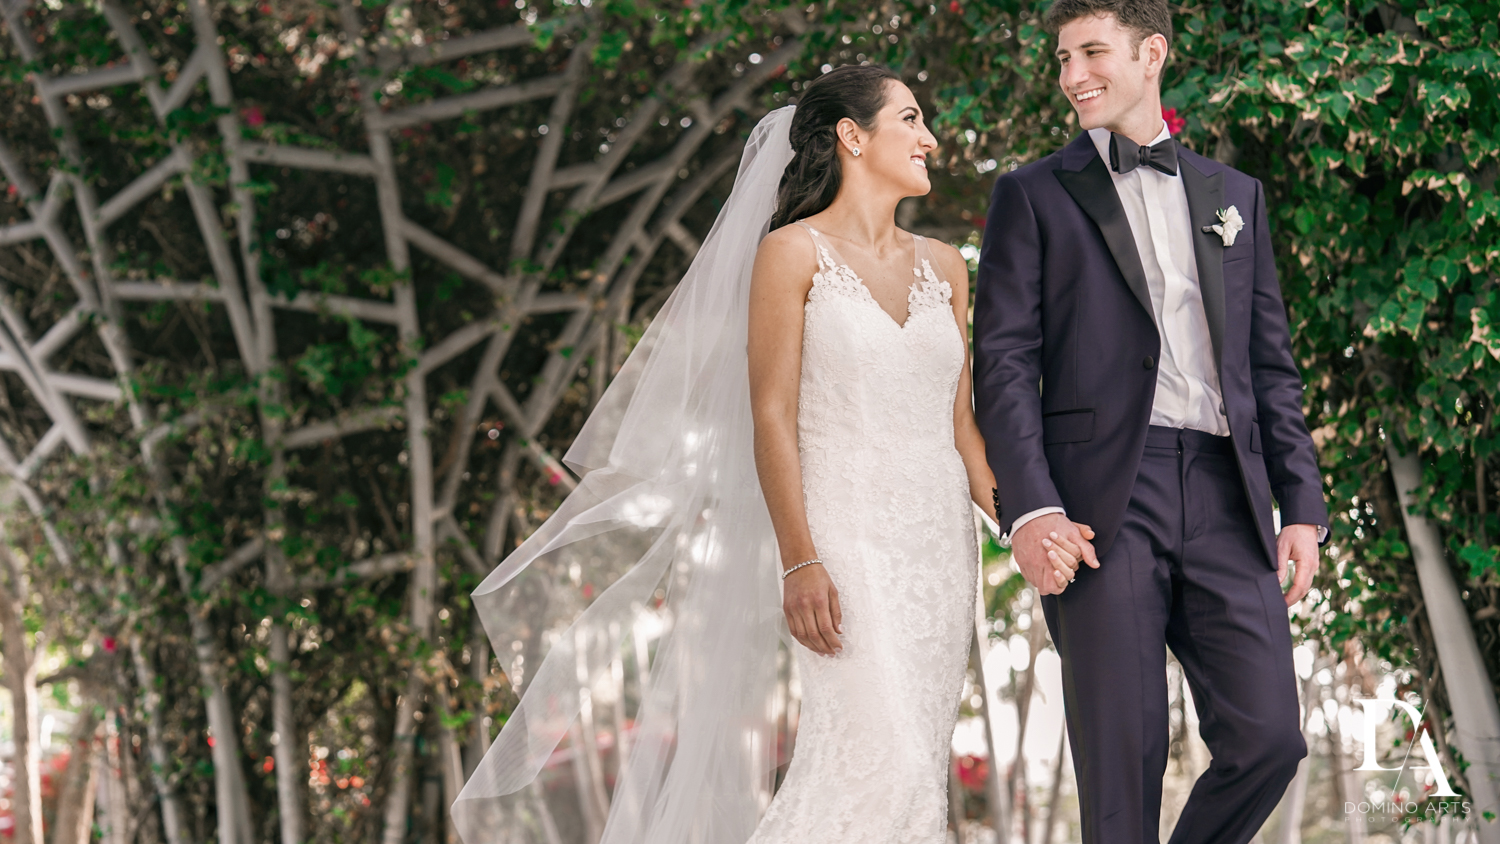 couples photos at Classic Miami Beach Wedding at Temple Emanu-El and Emanuel Luxury Venue by Domino Arts Photography